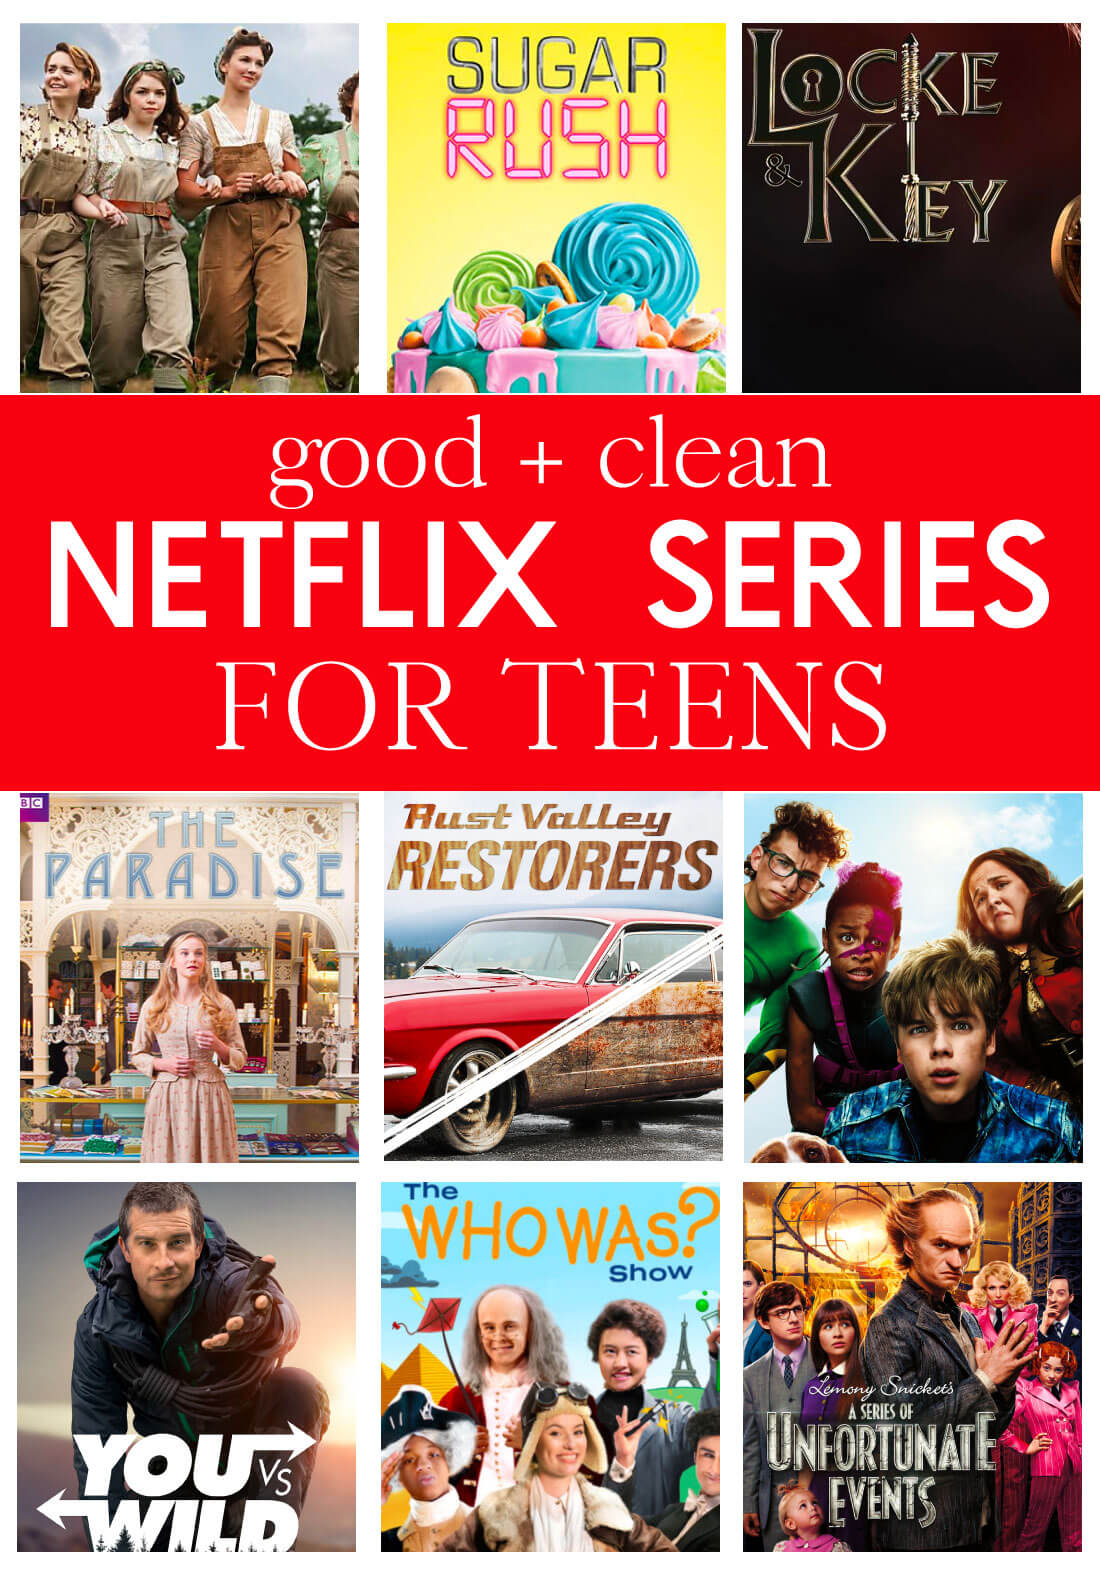 Good and clean netflix series for teens